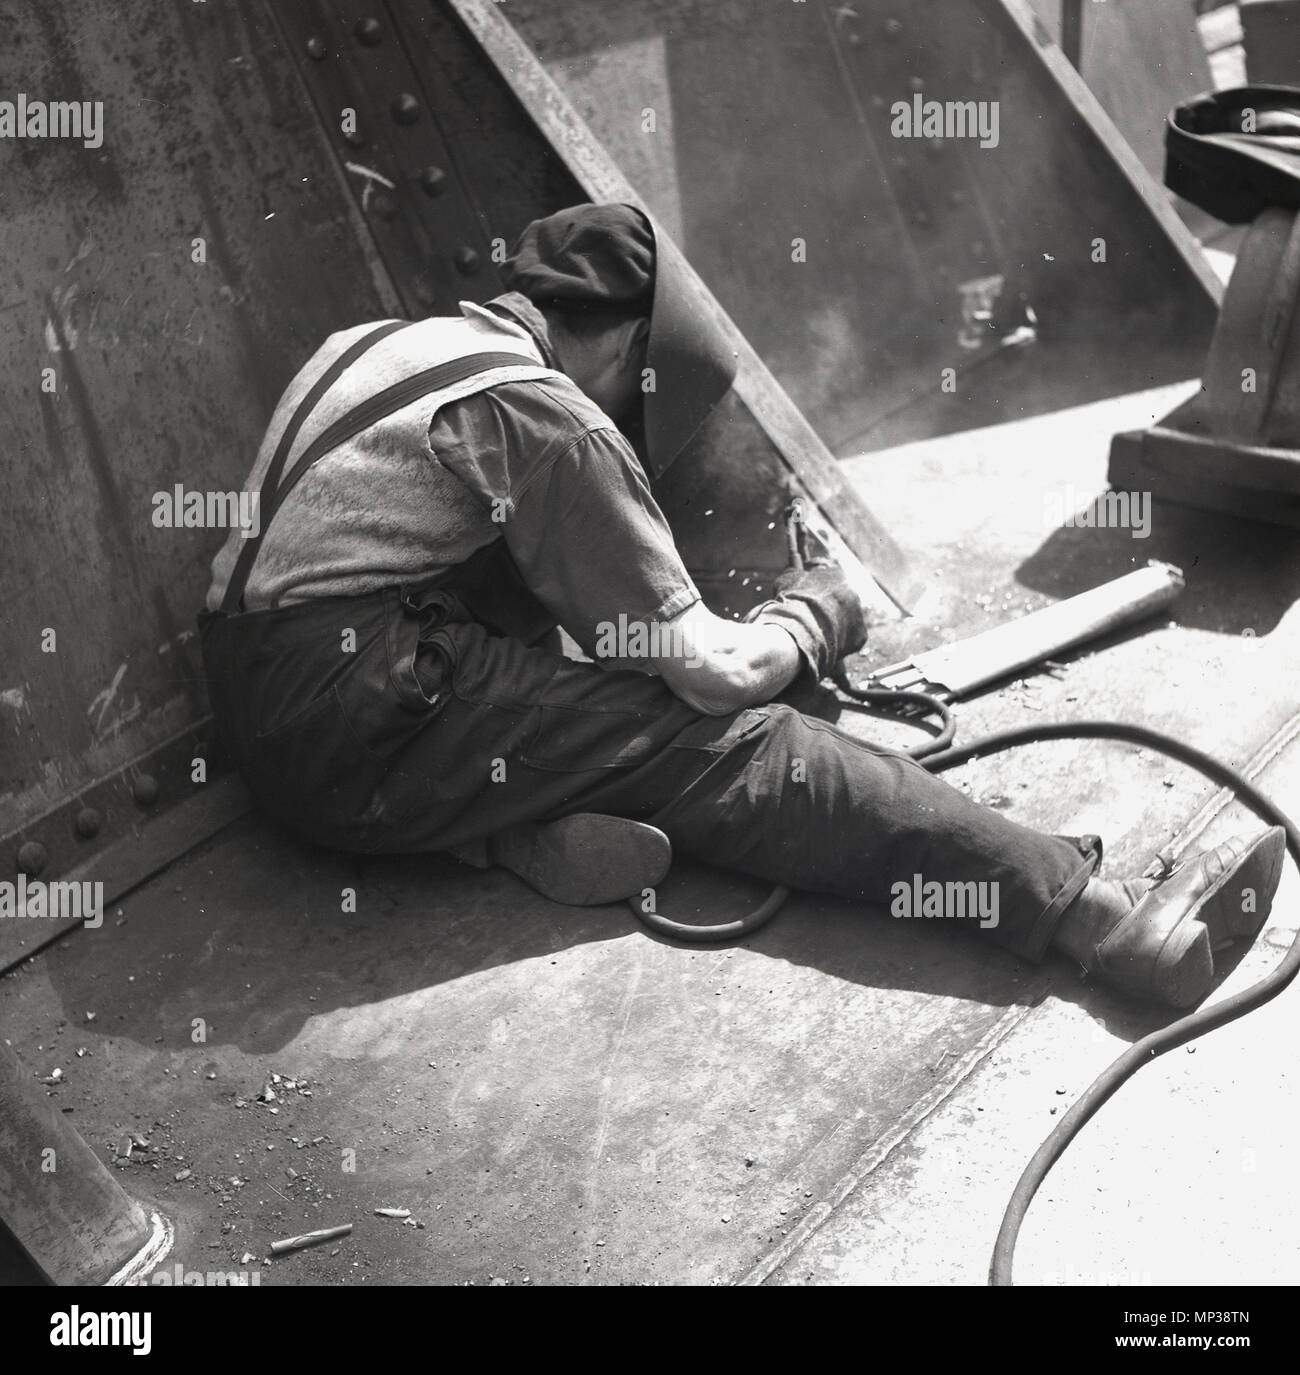 1950s, adult male worker with a face helmet or shield using a welding tool to do metalwork repairs on a ship's hull, Belfast, Northern Ireland. - Stock Image